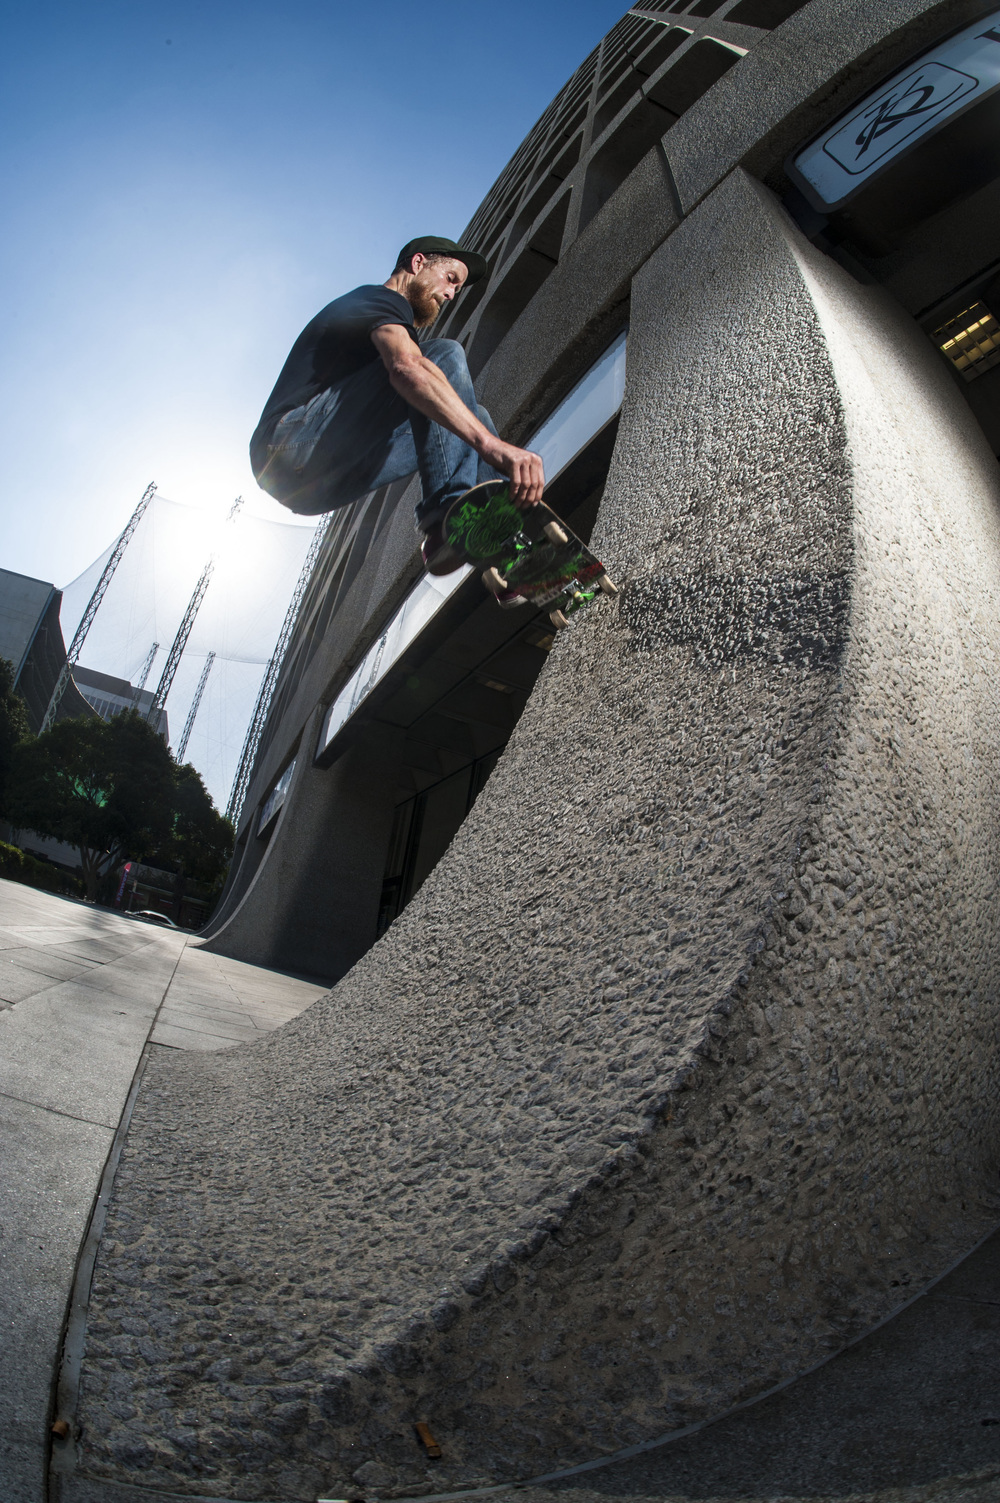 Jesse Hotchkiss - Lien to Tail- Jkwon